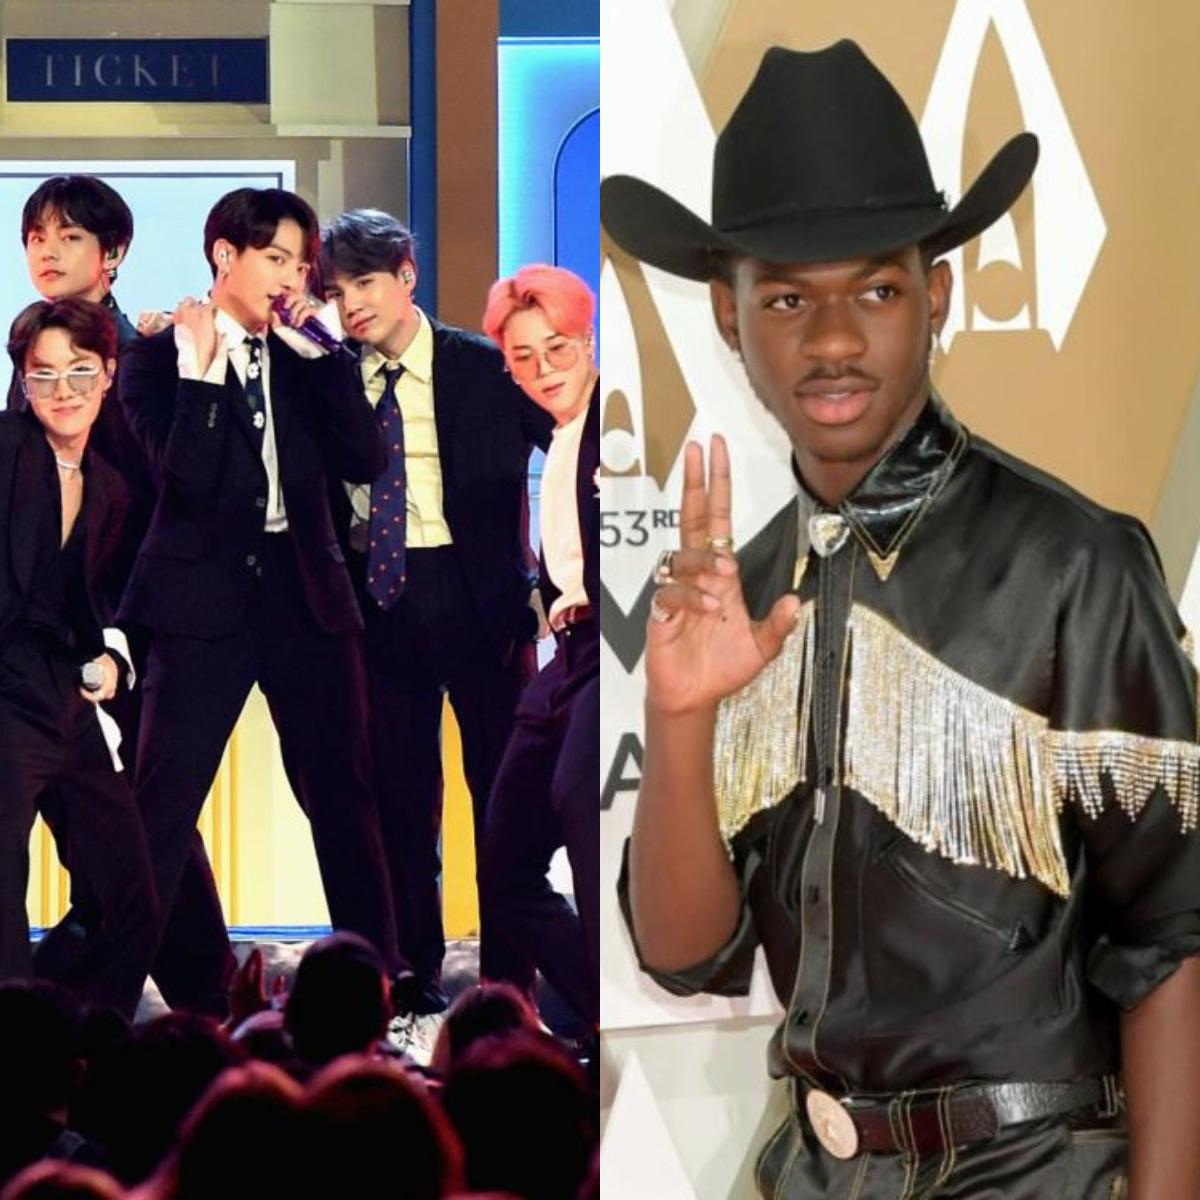 Grammys 2020: BTS to perform alongside Old Town Road's Lil Nas X? Find Out